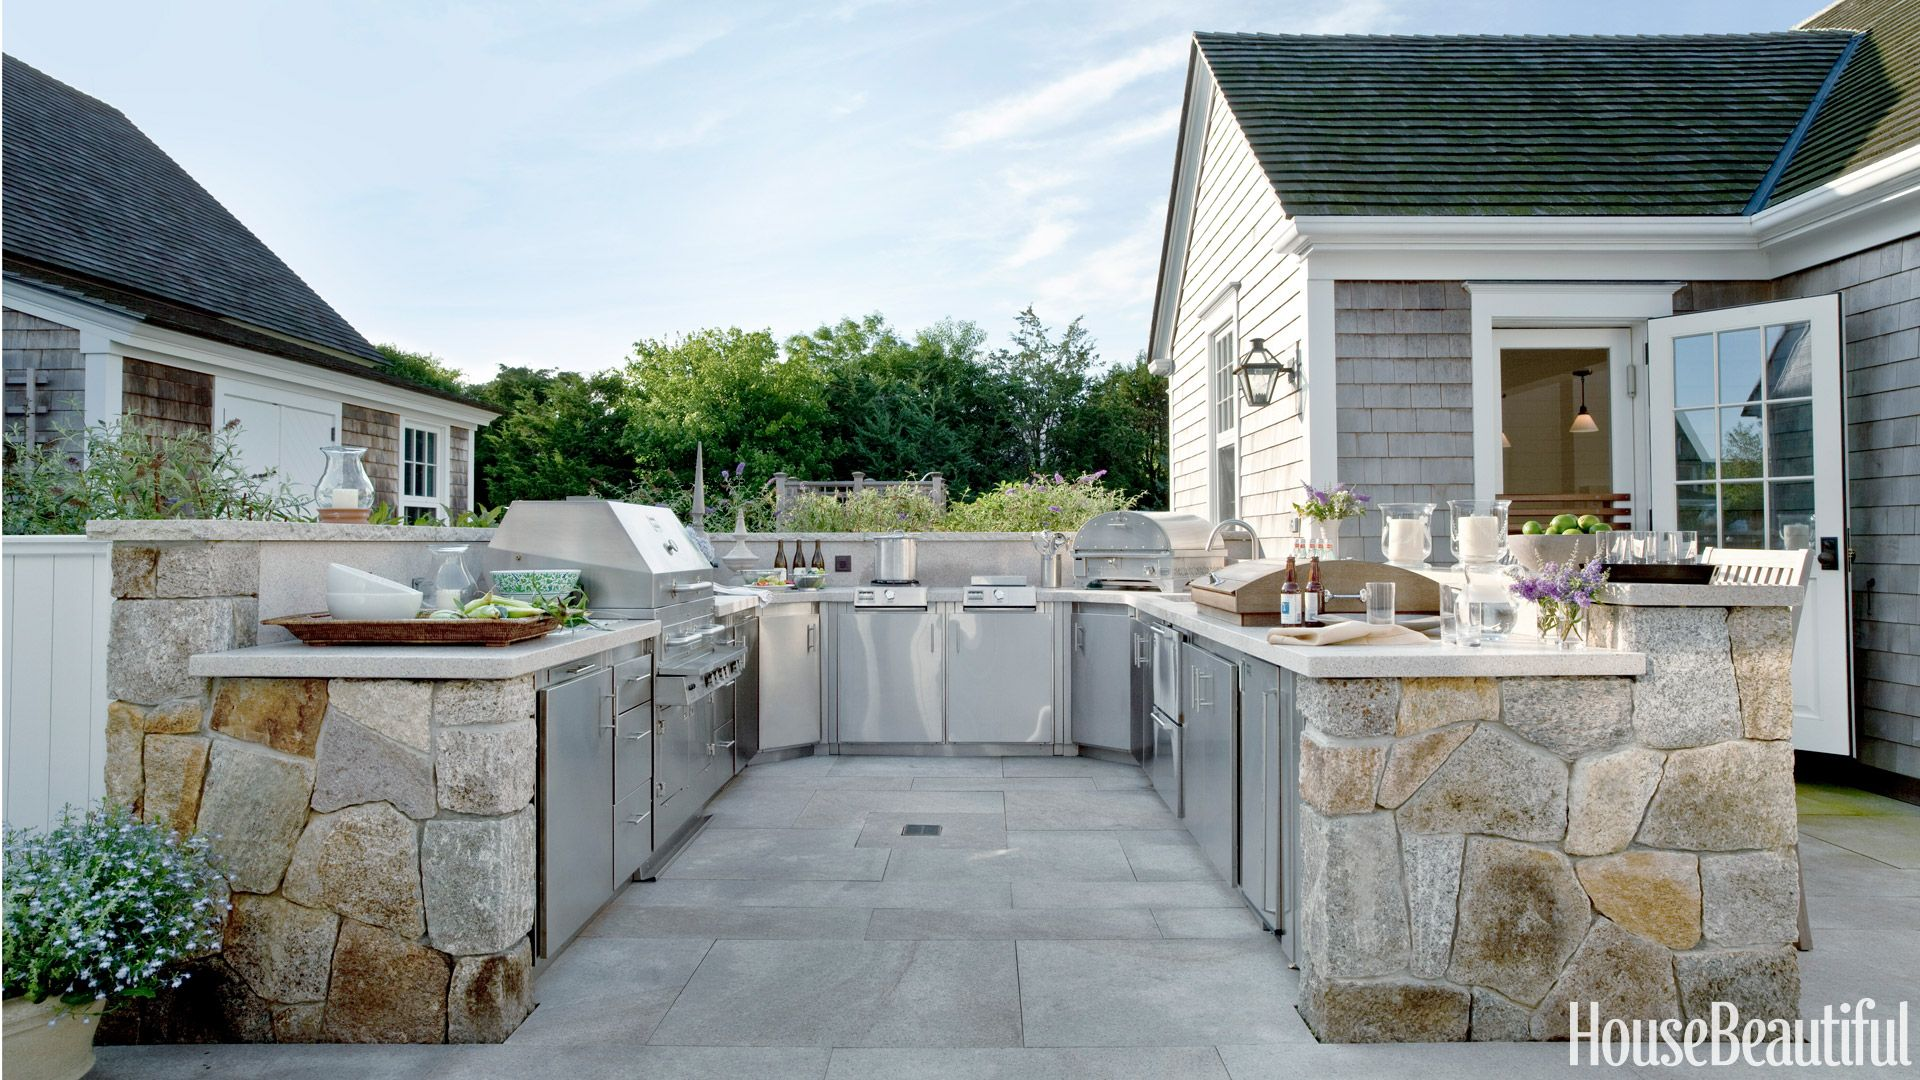 20 outdoor kitchen design ideas and pictures - Outdoor Kitchen Ideas Designs